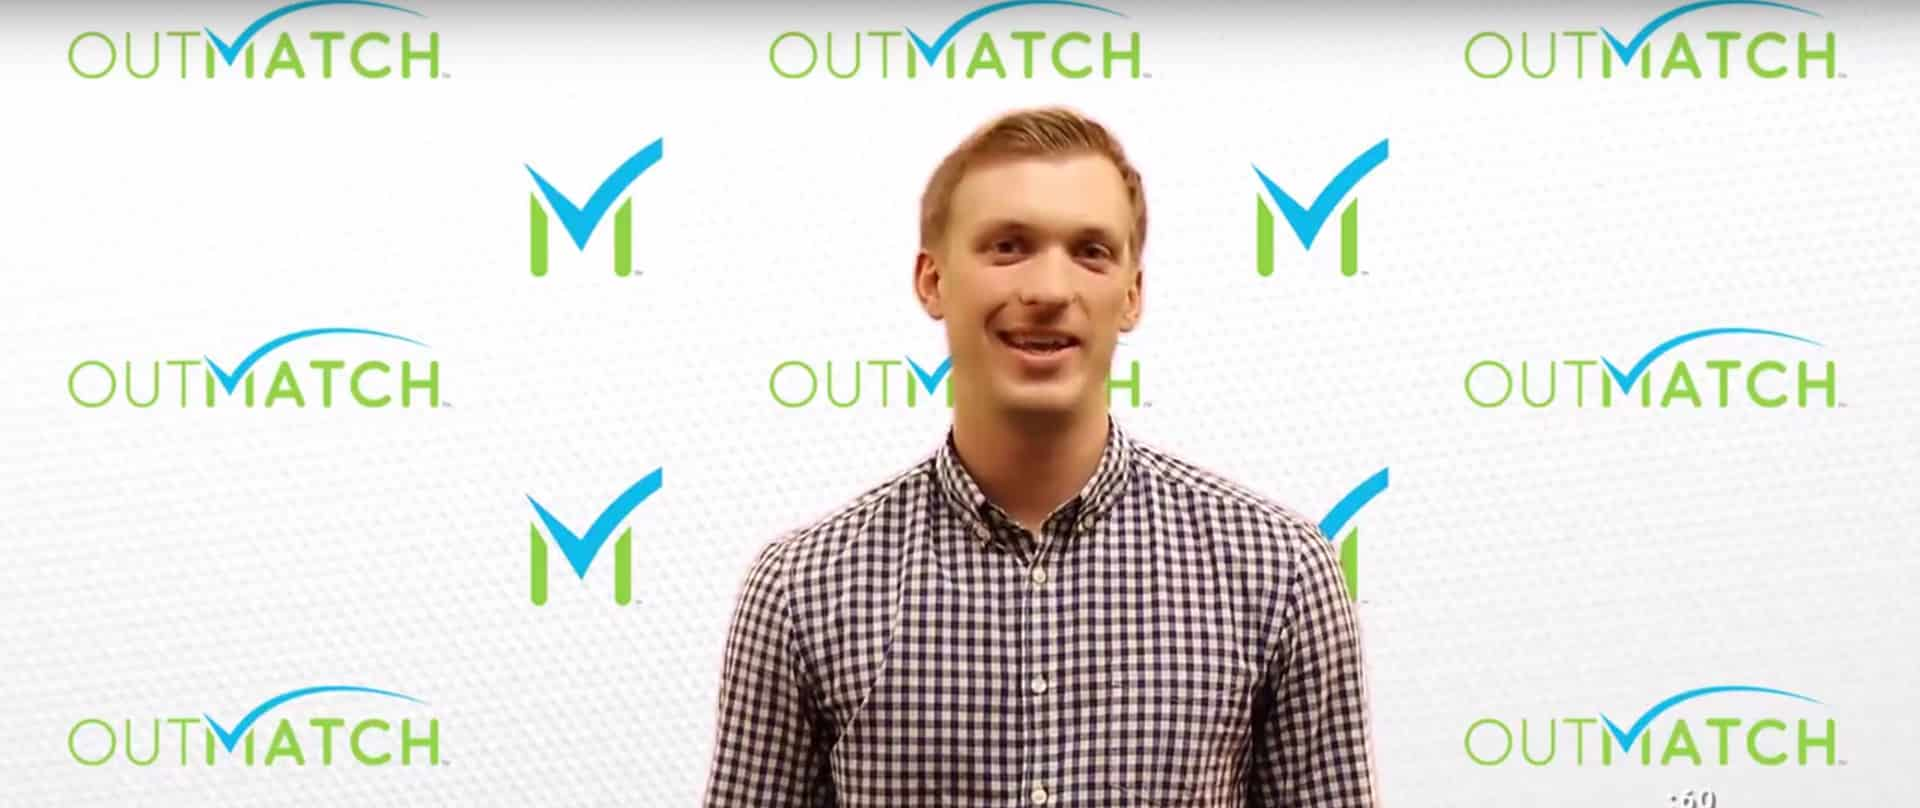 OutMatch Minute: 7 Customer Service Traits You Just Can't Teach